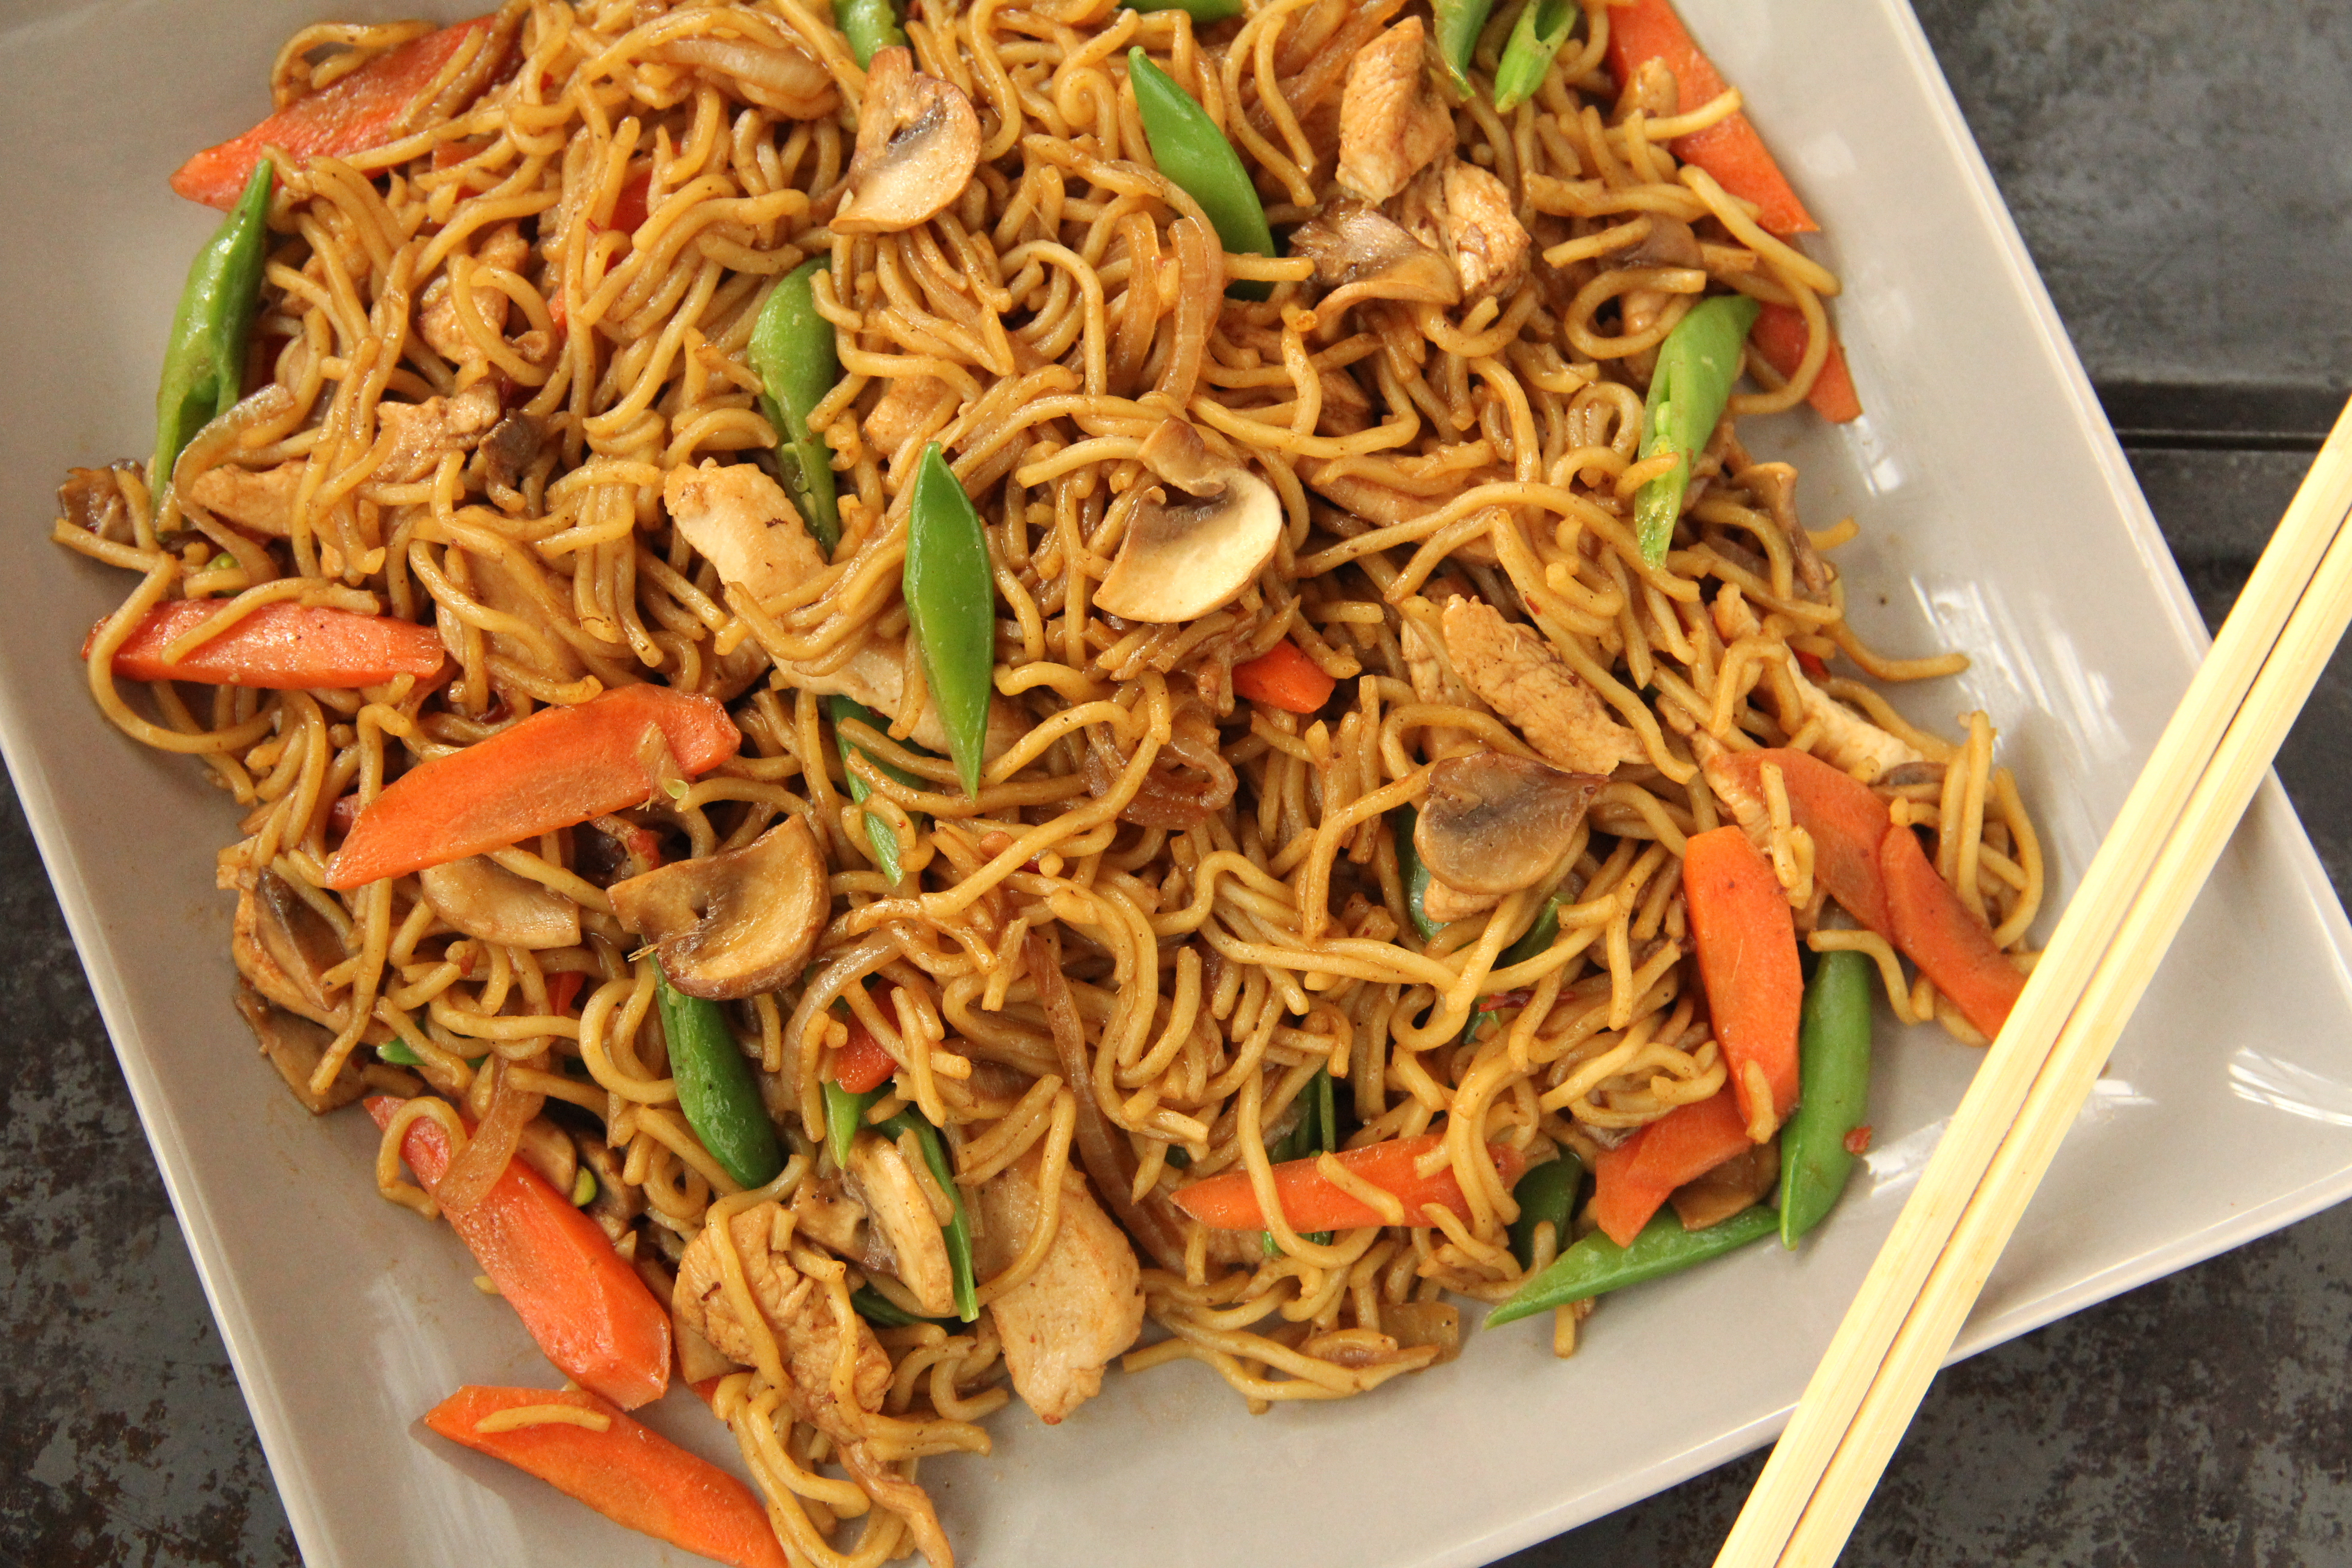 Yakisoba Images | Crazy Gallery